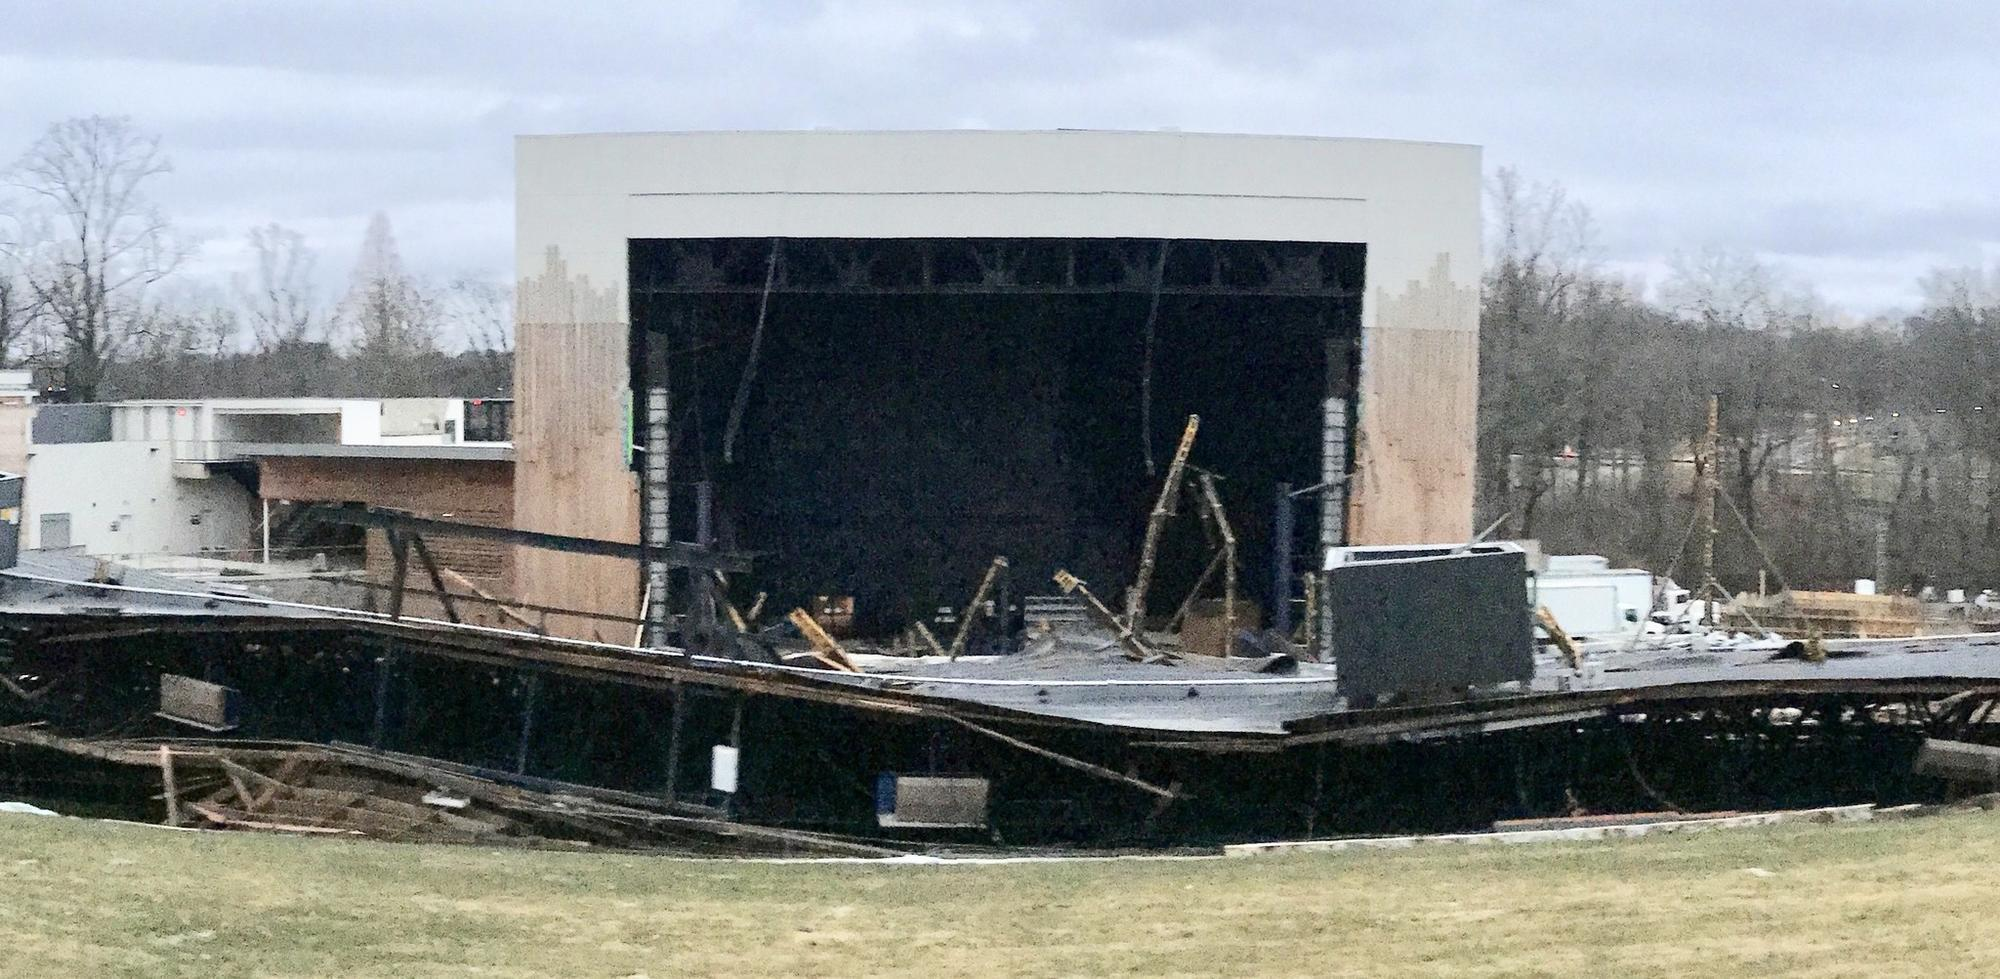 After Roof Collapse Merriweather Post Pavilion Plans To